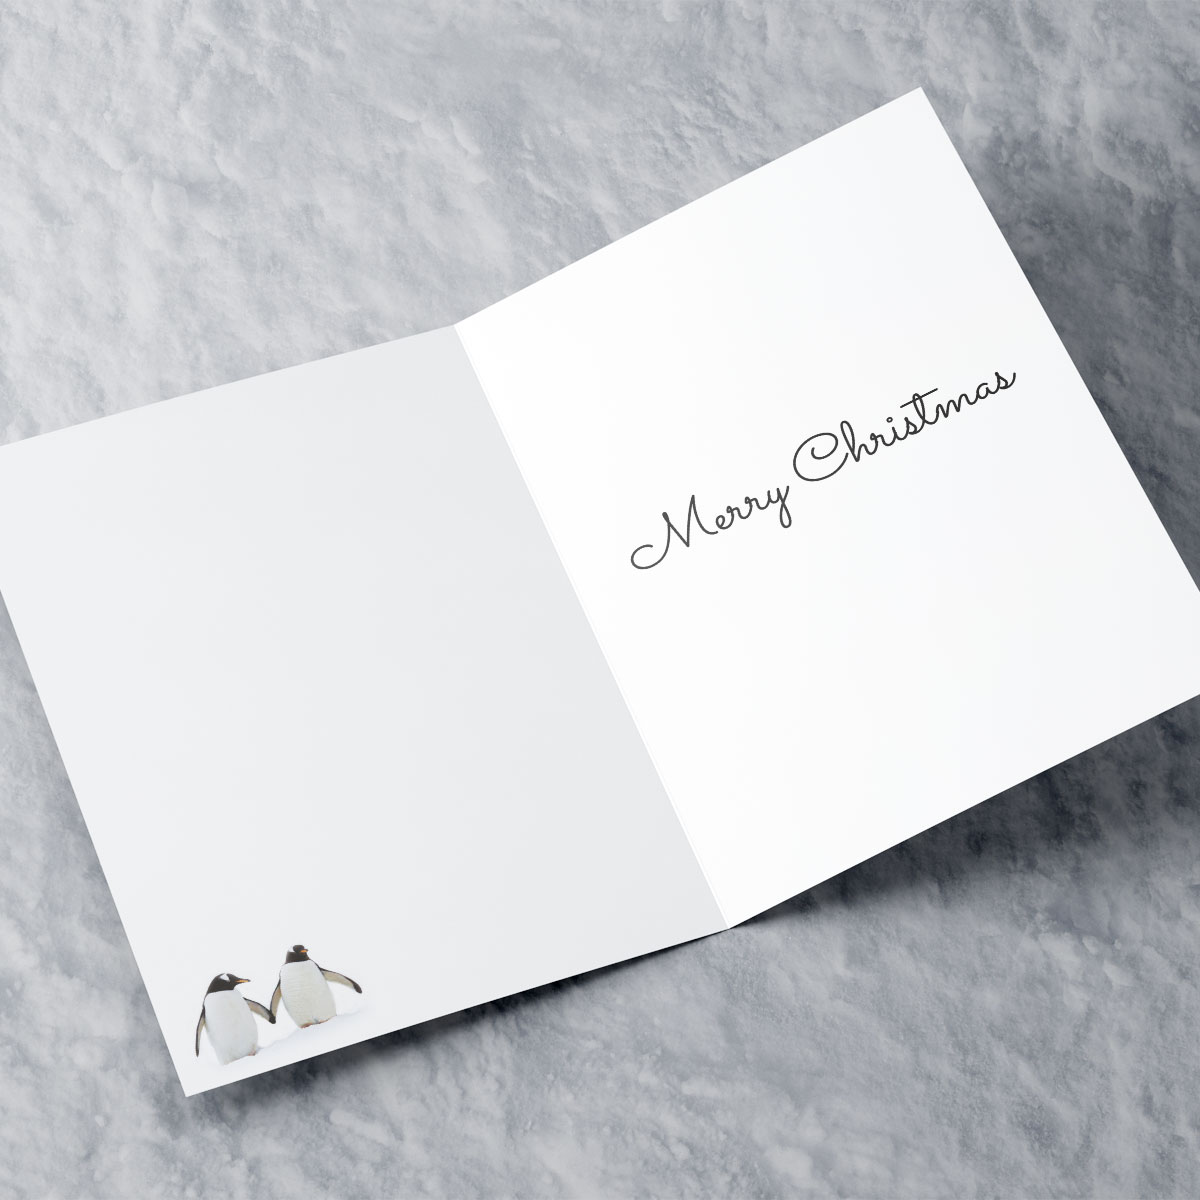 Personalised Christmas Card - Penguins - Sister and Brother-In-Law